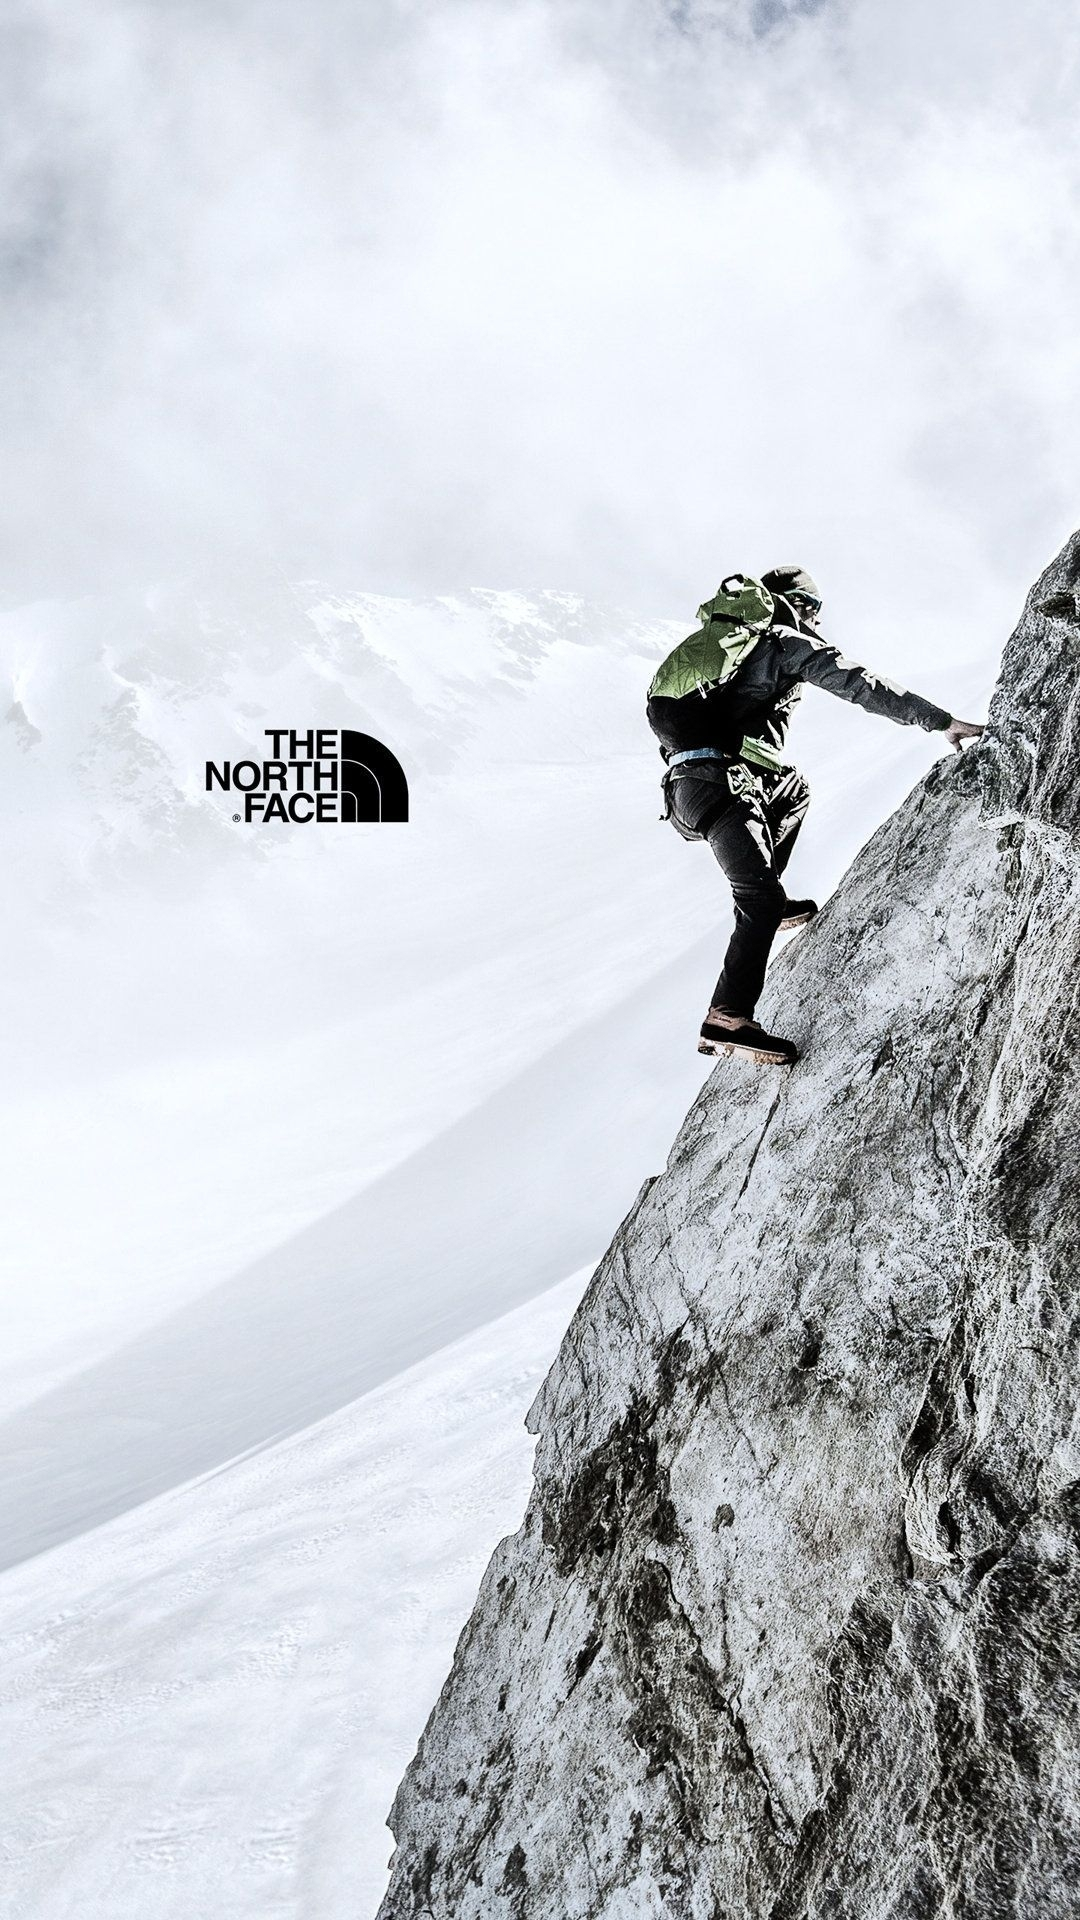 the north face wallpapers - wallpaper cave